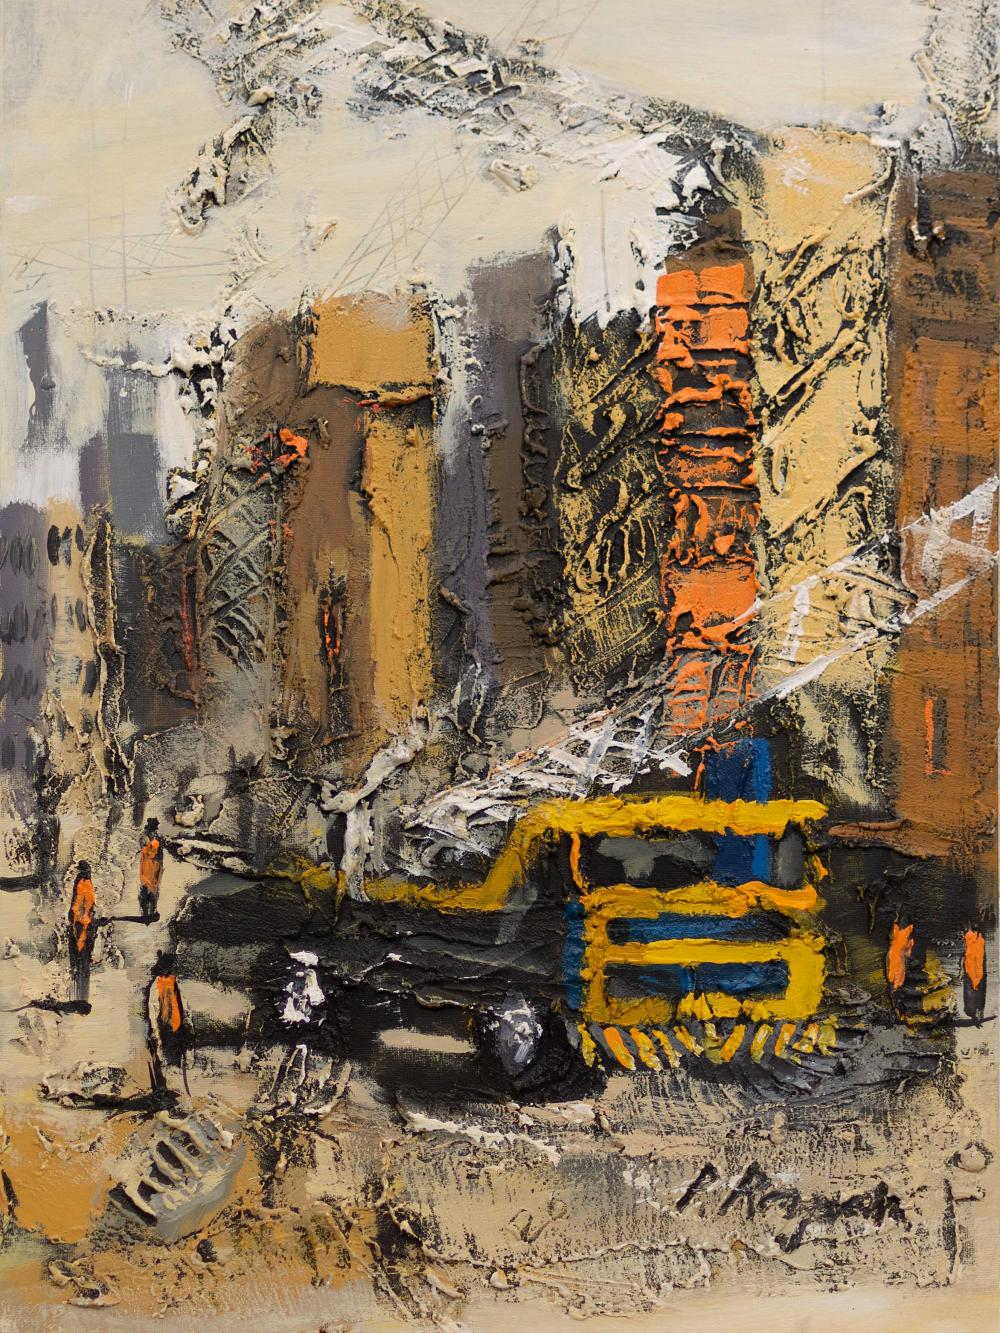 Patrick Rapai (Zimbabwean, Born 1976) Oil, Abstract City Scene, Signed, 76 x 51 unframed